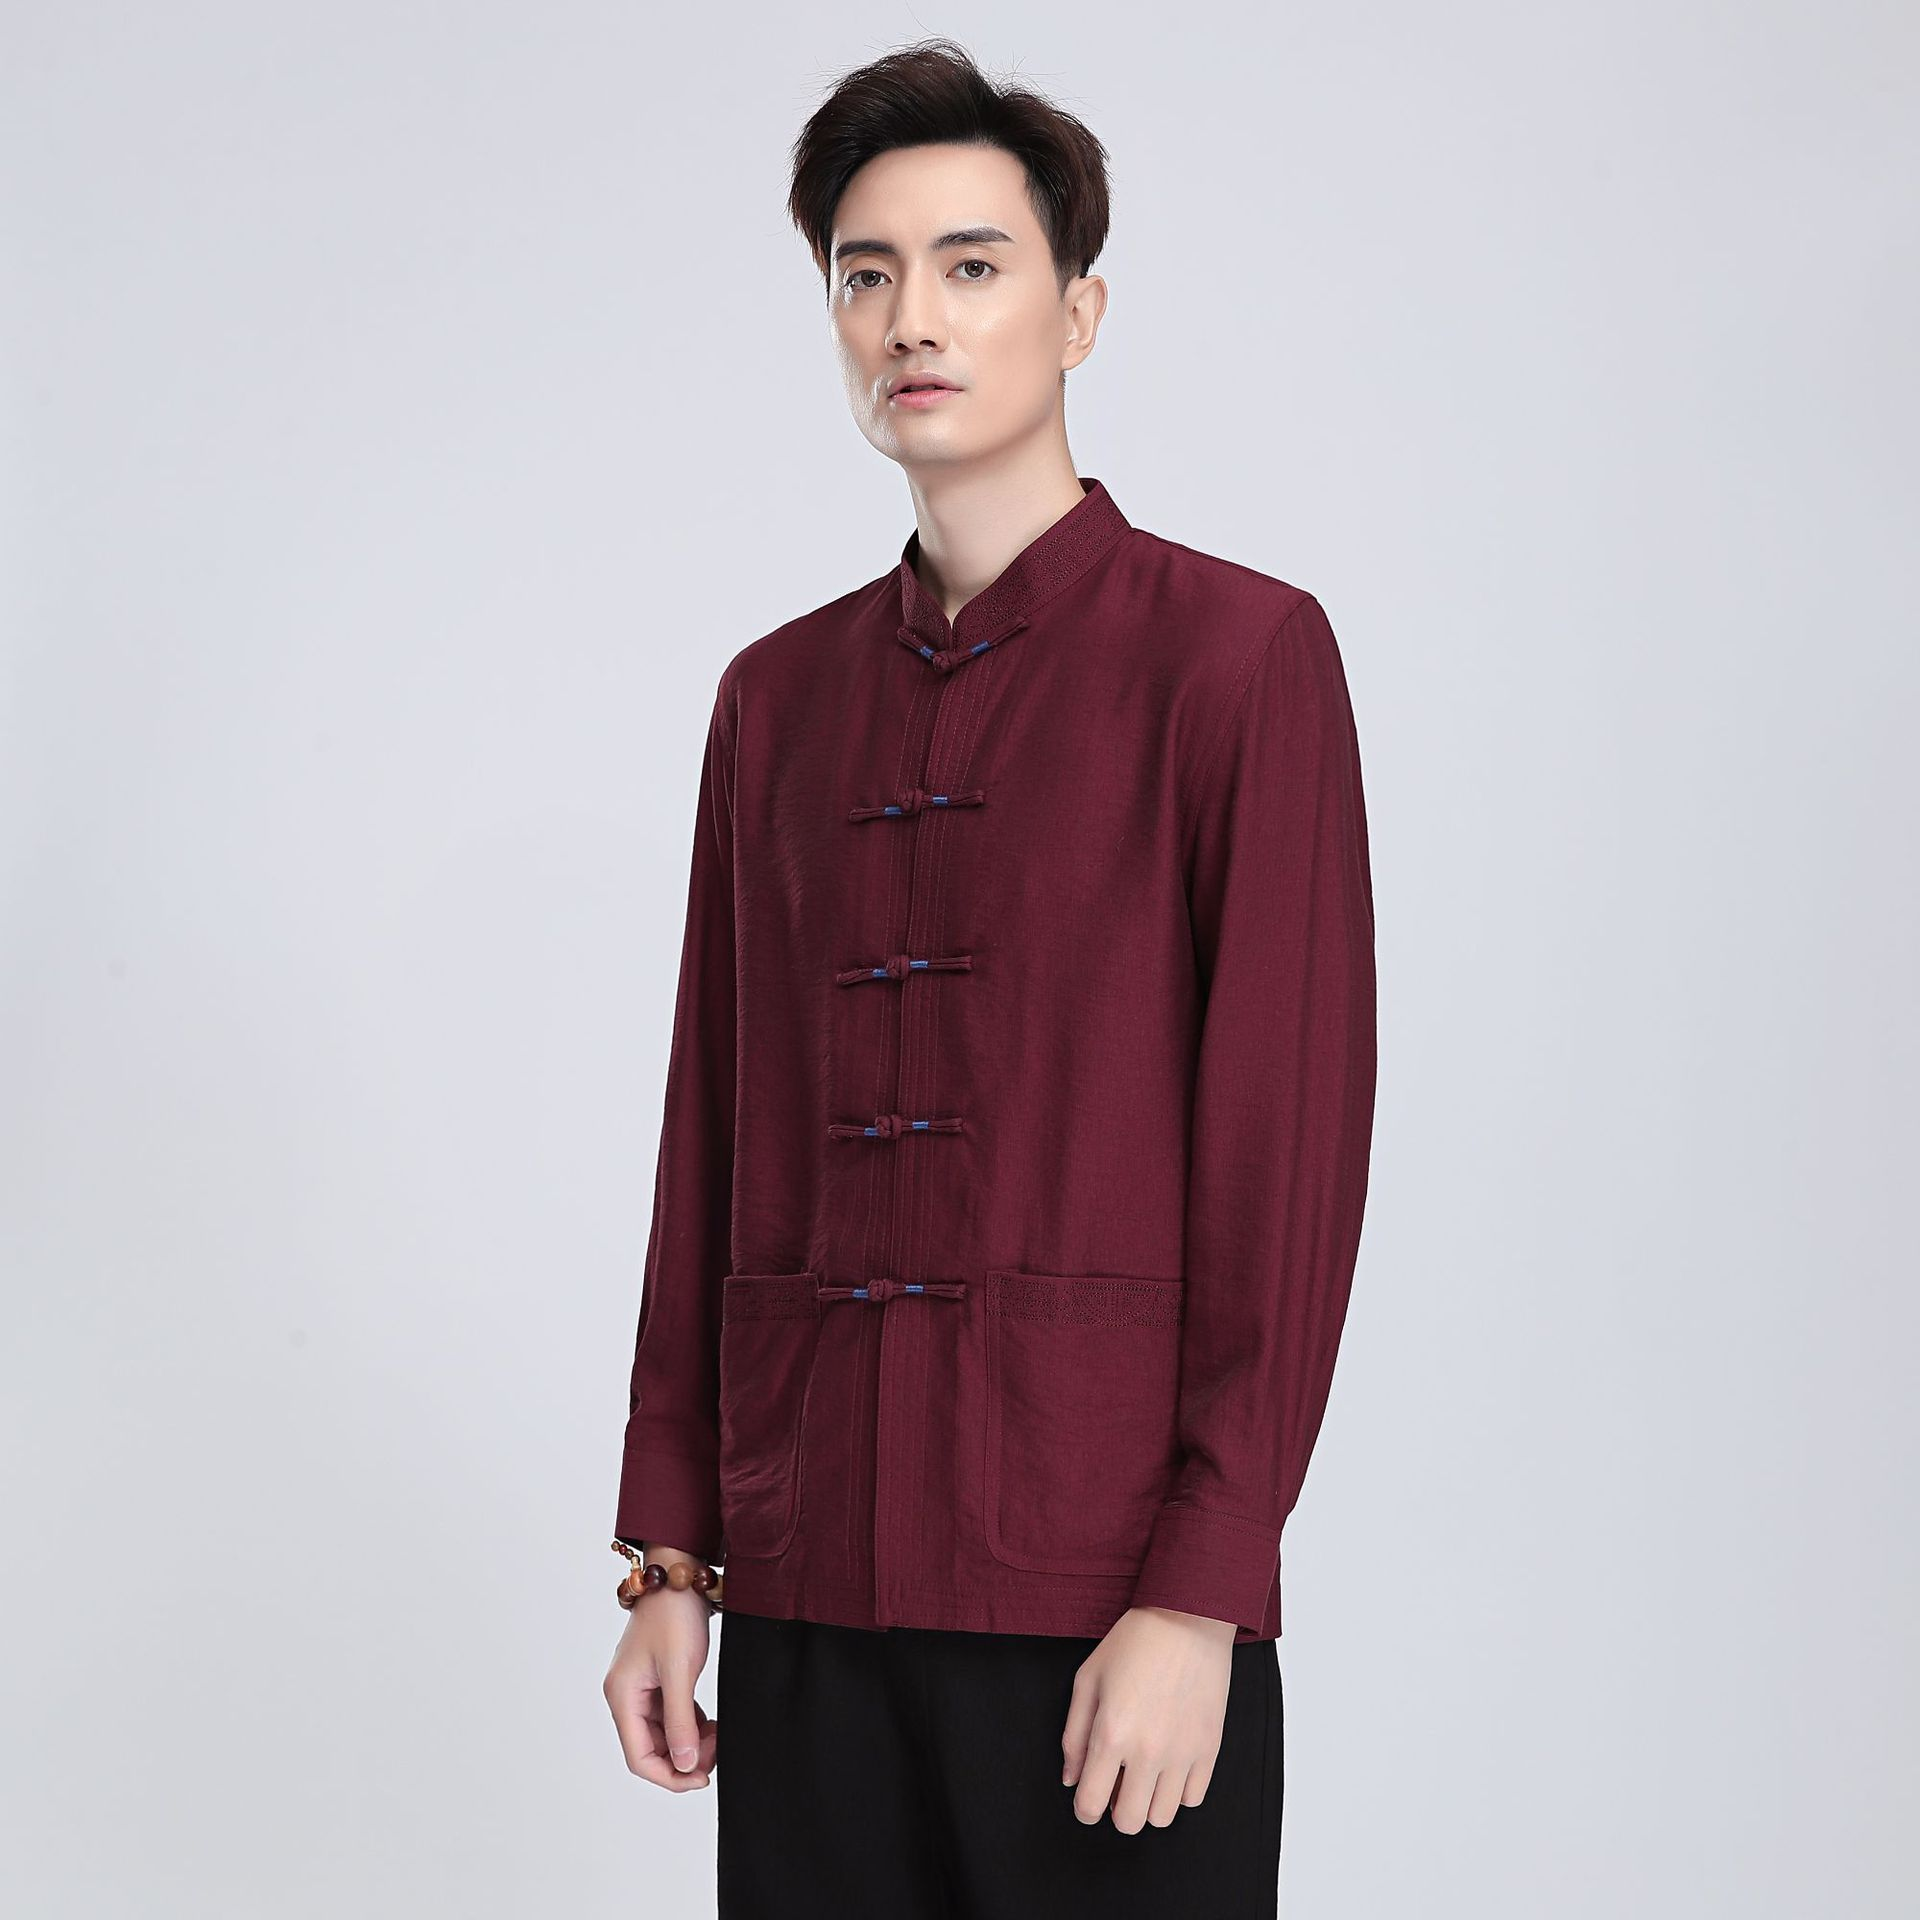 Chinese-style Chinese Style Flax 2813-3 Chinese Costume MEN'S Long Sleeve Top Middle-aged Long-sleeved Shirt/Set